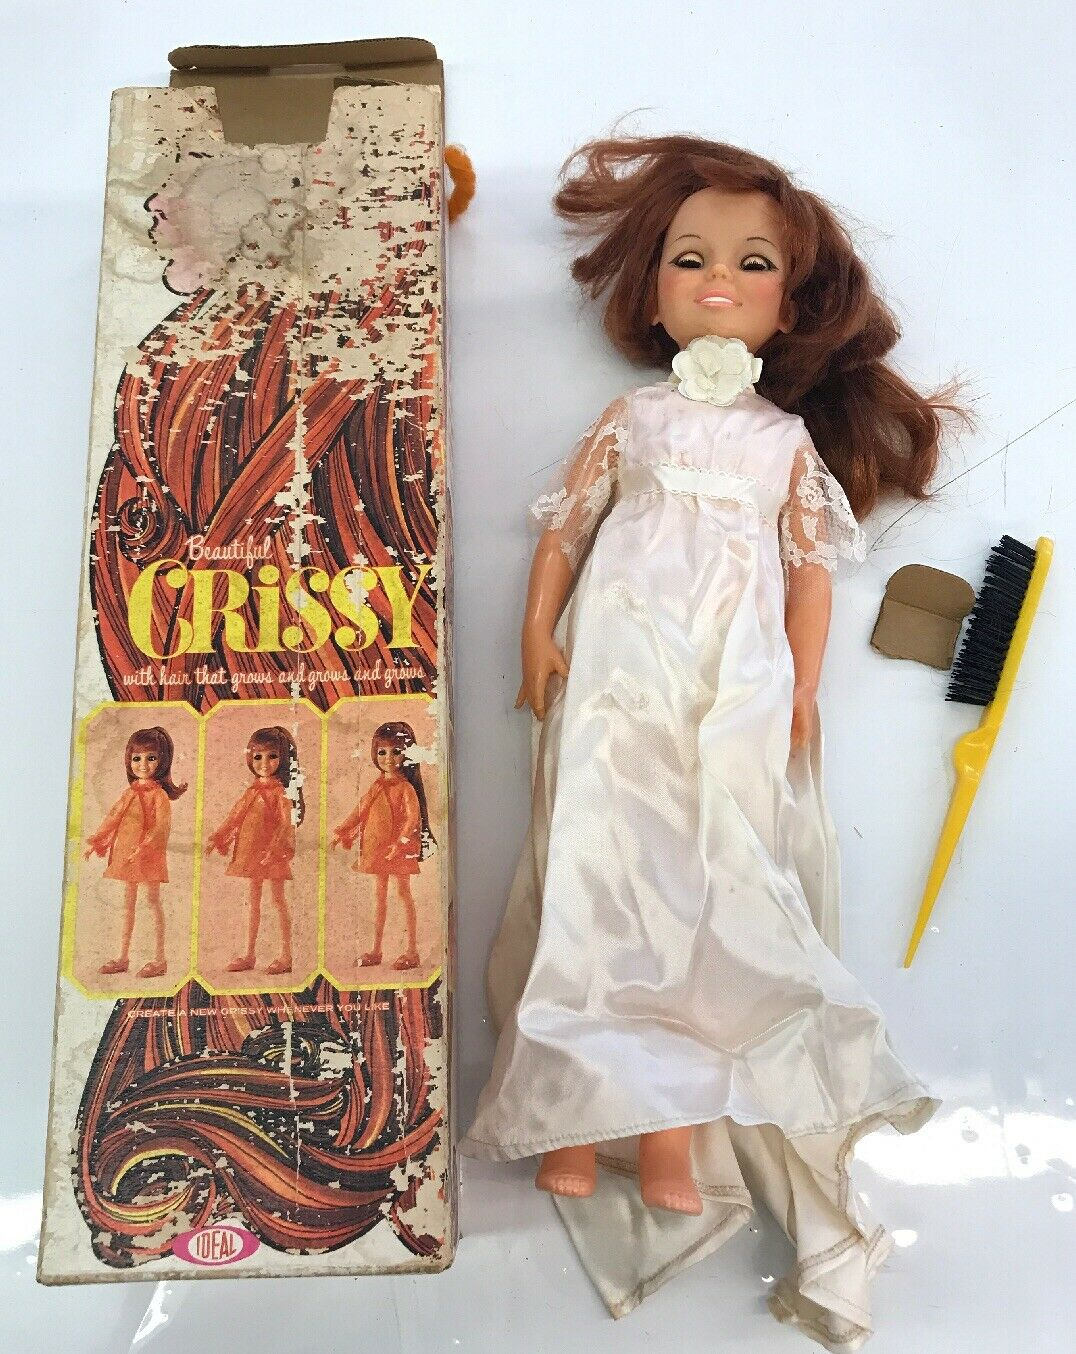 1969 Beautiful rot Hair 18  Crissy Doll by Ideal with Original Box Rare